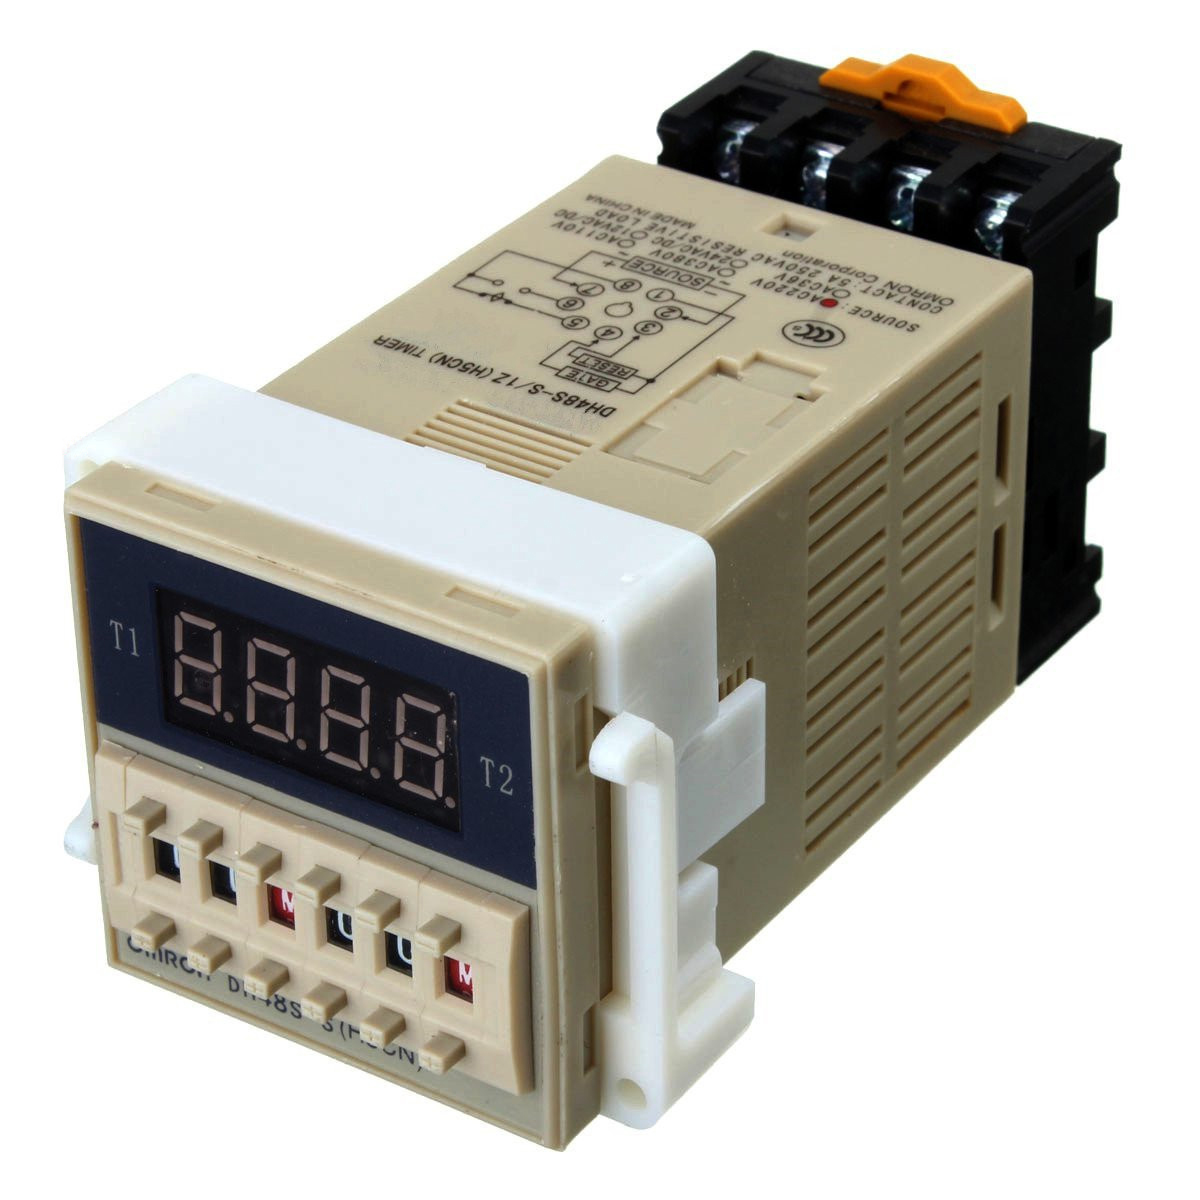 THGS AC 220V 5A Programmable Double Time Timer Delay Relay Device Tool DH48S-S